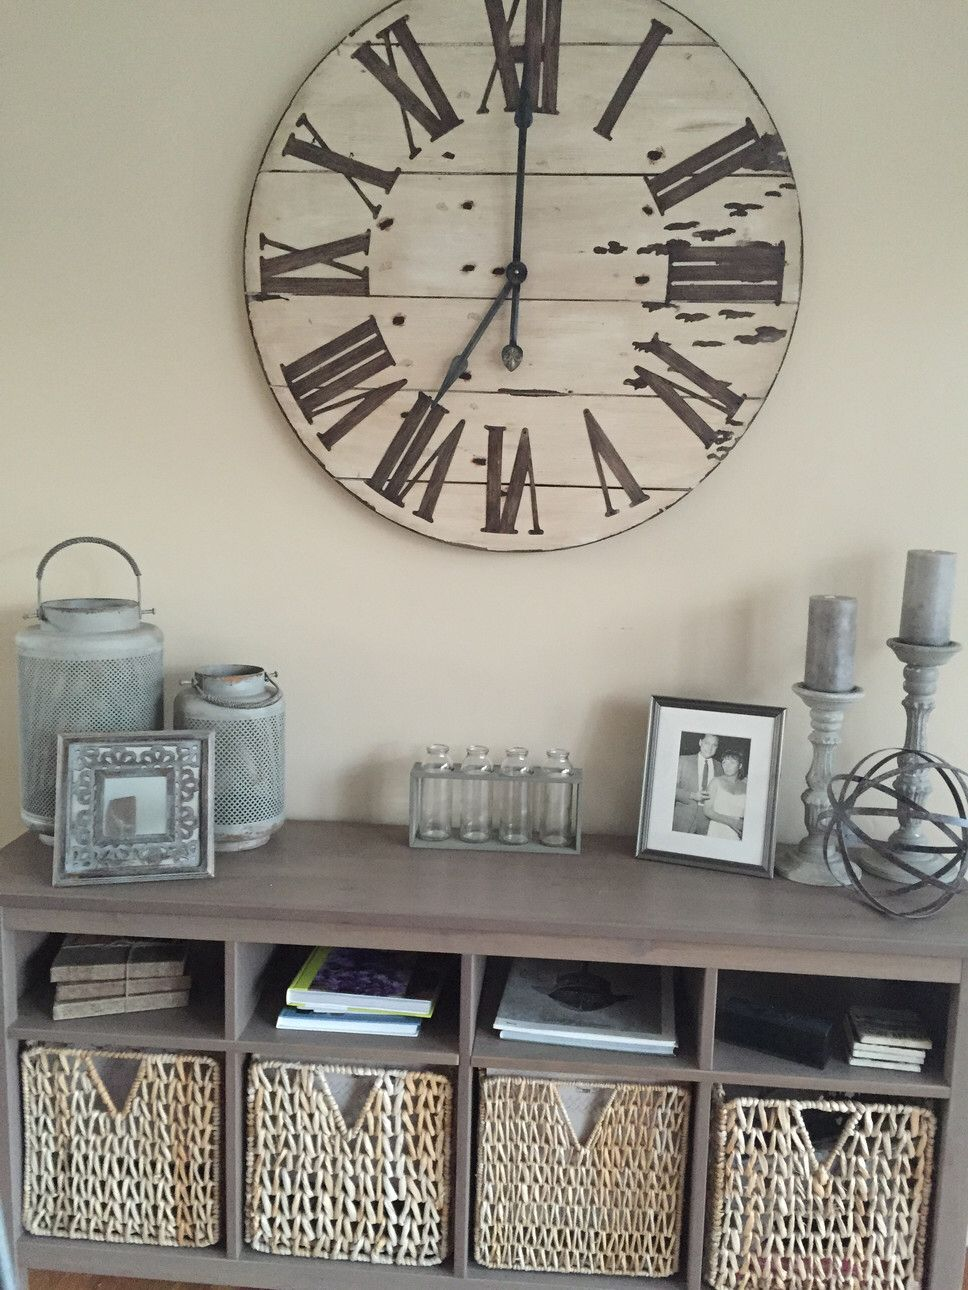 How To Decorate Wall With Shelf Clock Vtwctr